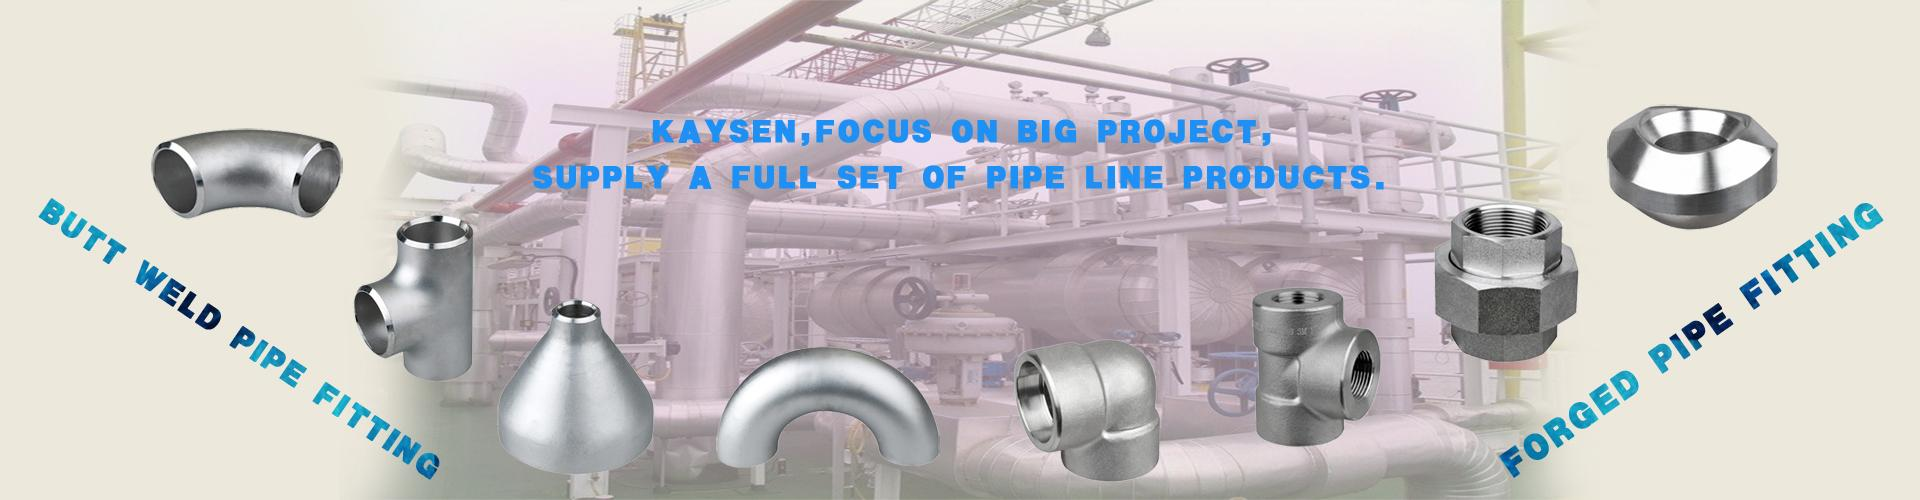 Forged Pipe Fittings Butt Welding Pipe Fittings